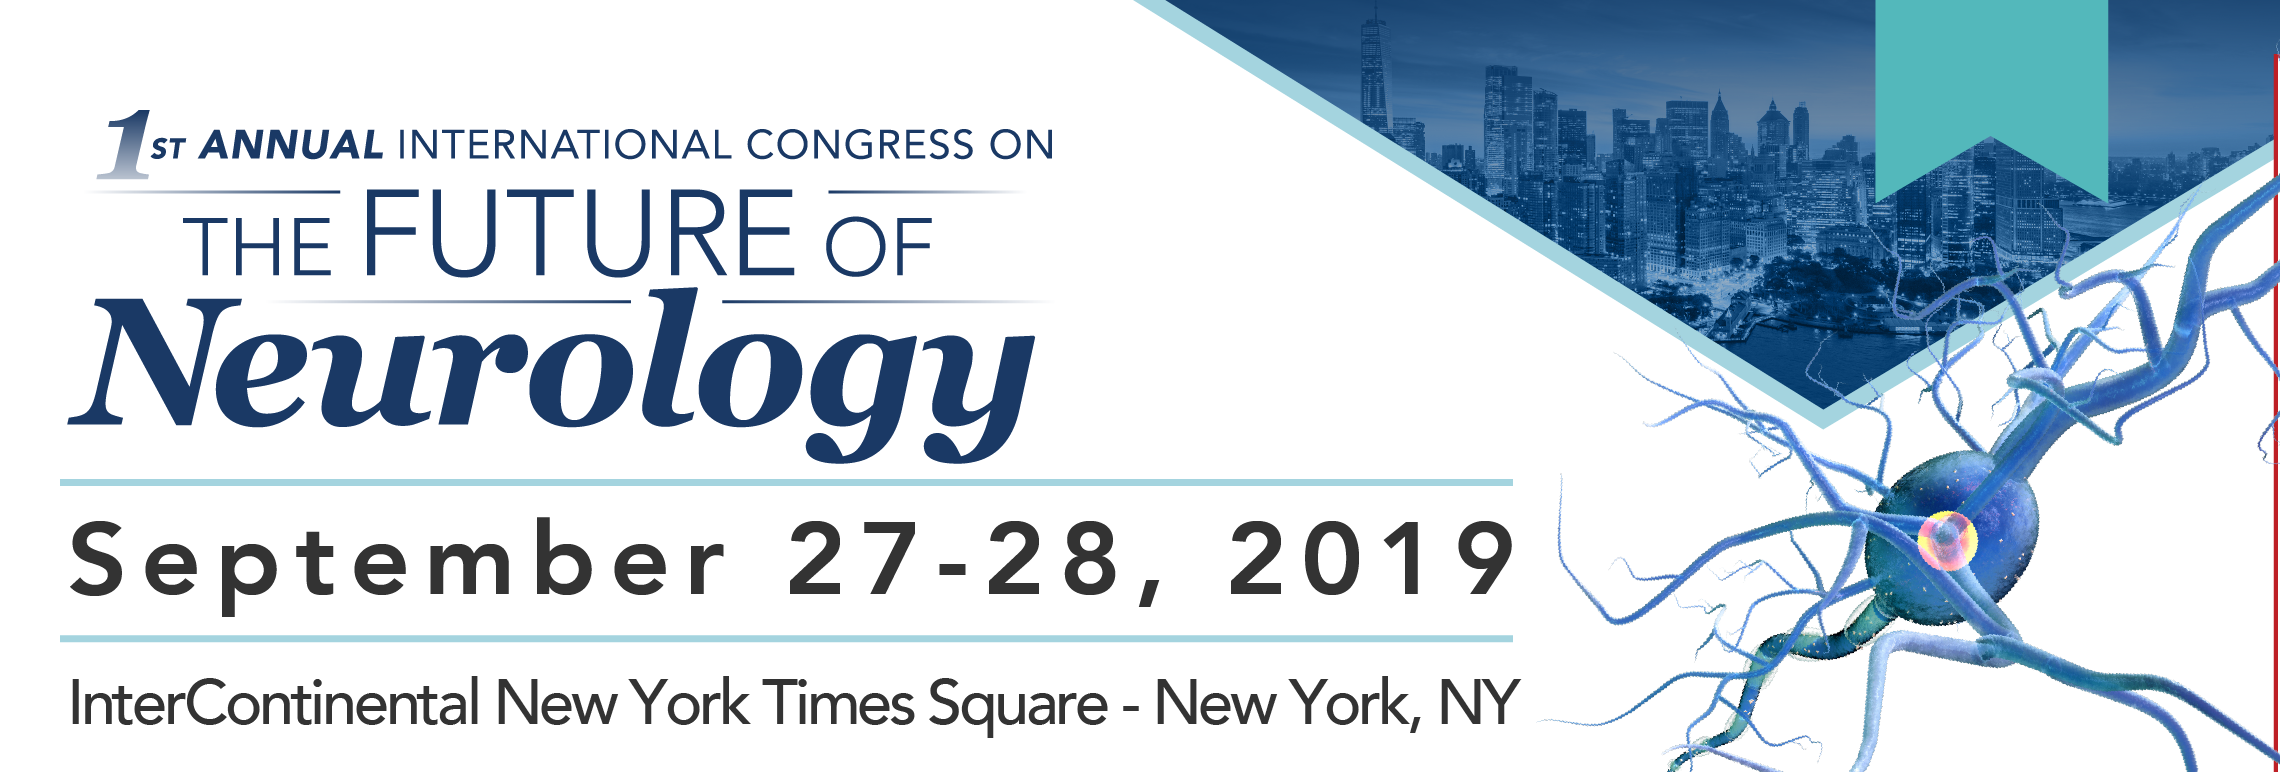 1st Annual International Congress on the Future of Neurology